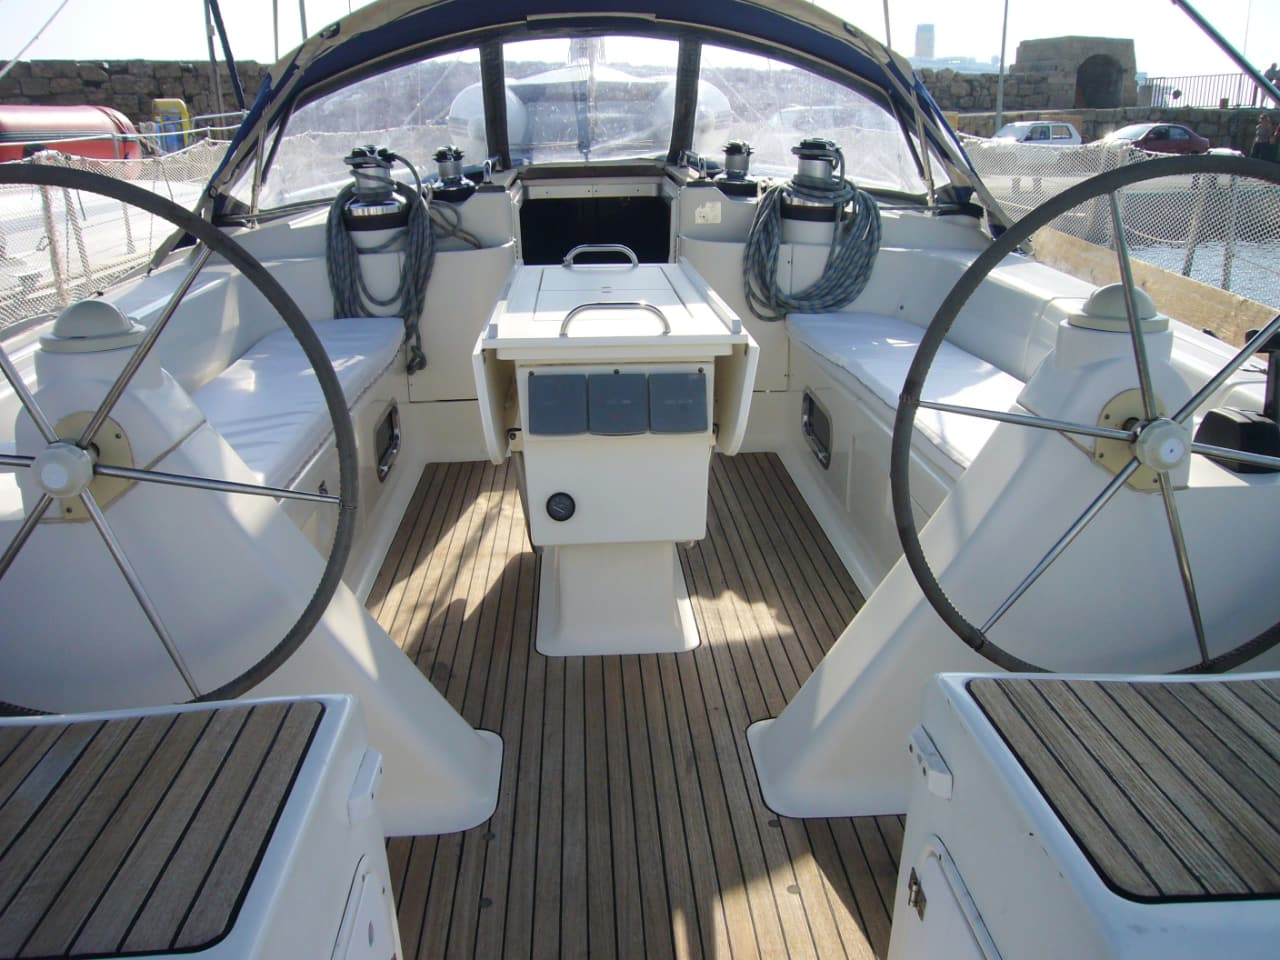 Bavaria 47 / 2000, 15 meters long, (47ft) that can accommodate up to 8 people, sailing trip south chania crete